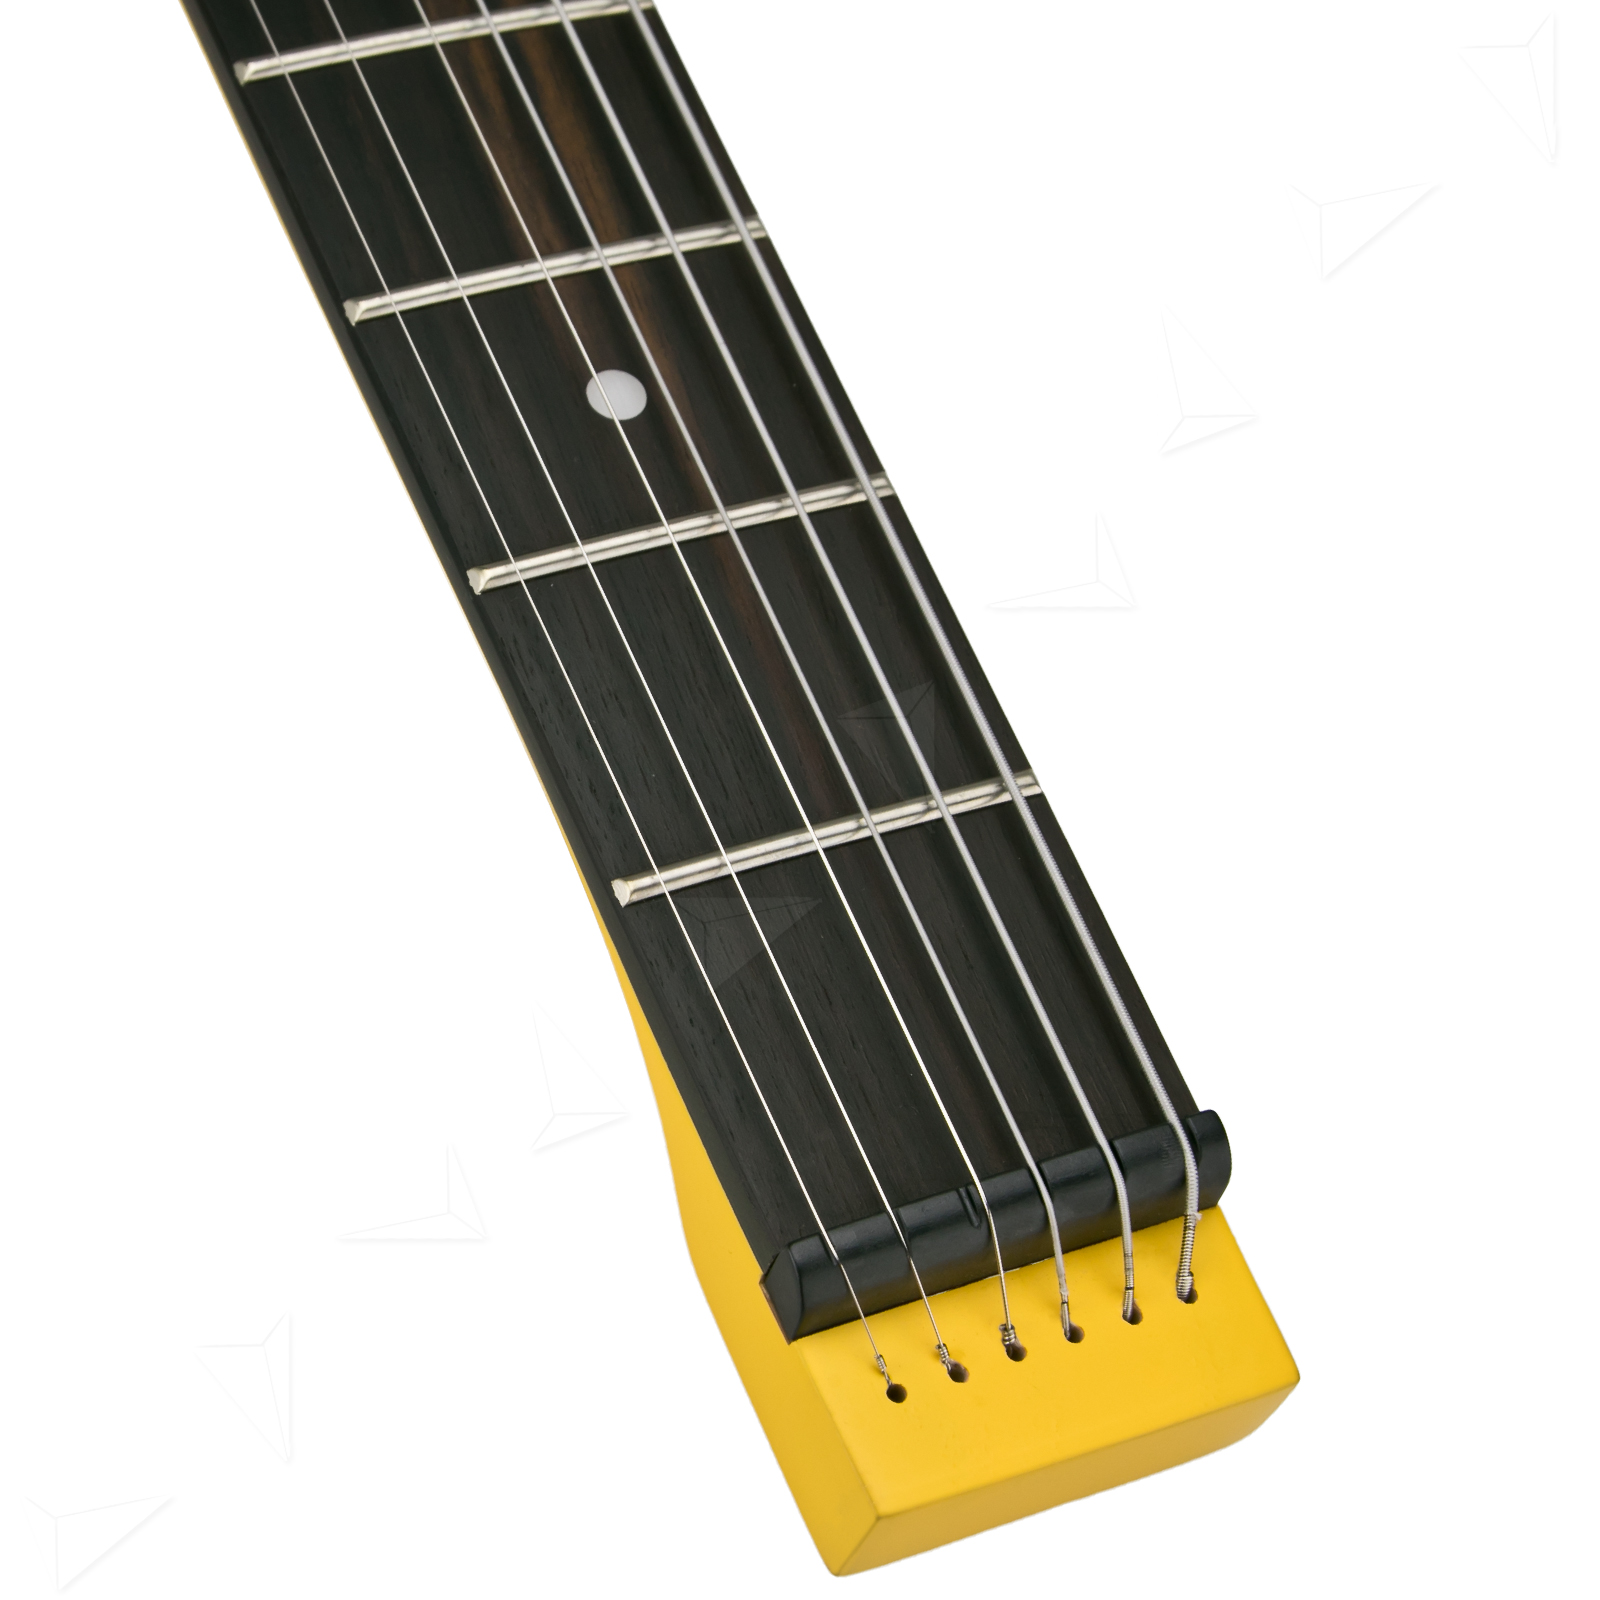 anygig age 24 frets 648mm electric guitar full scale matte corvette yellow ebay. Black Bedroom Furniture Sets. Home Design Ideas